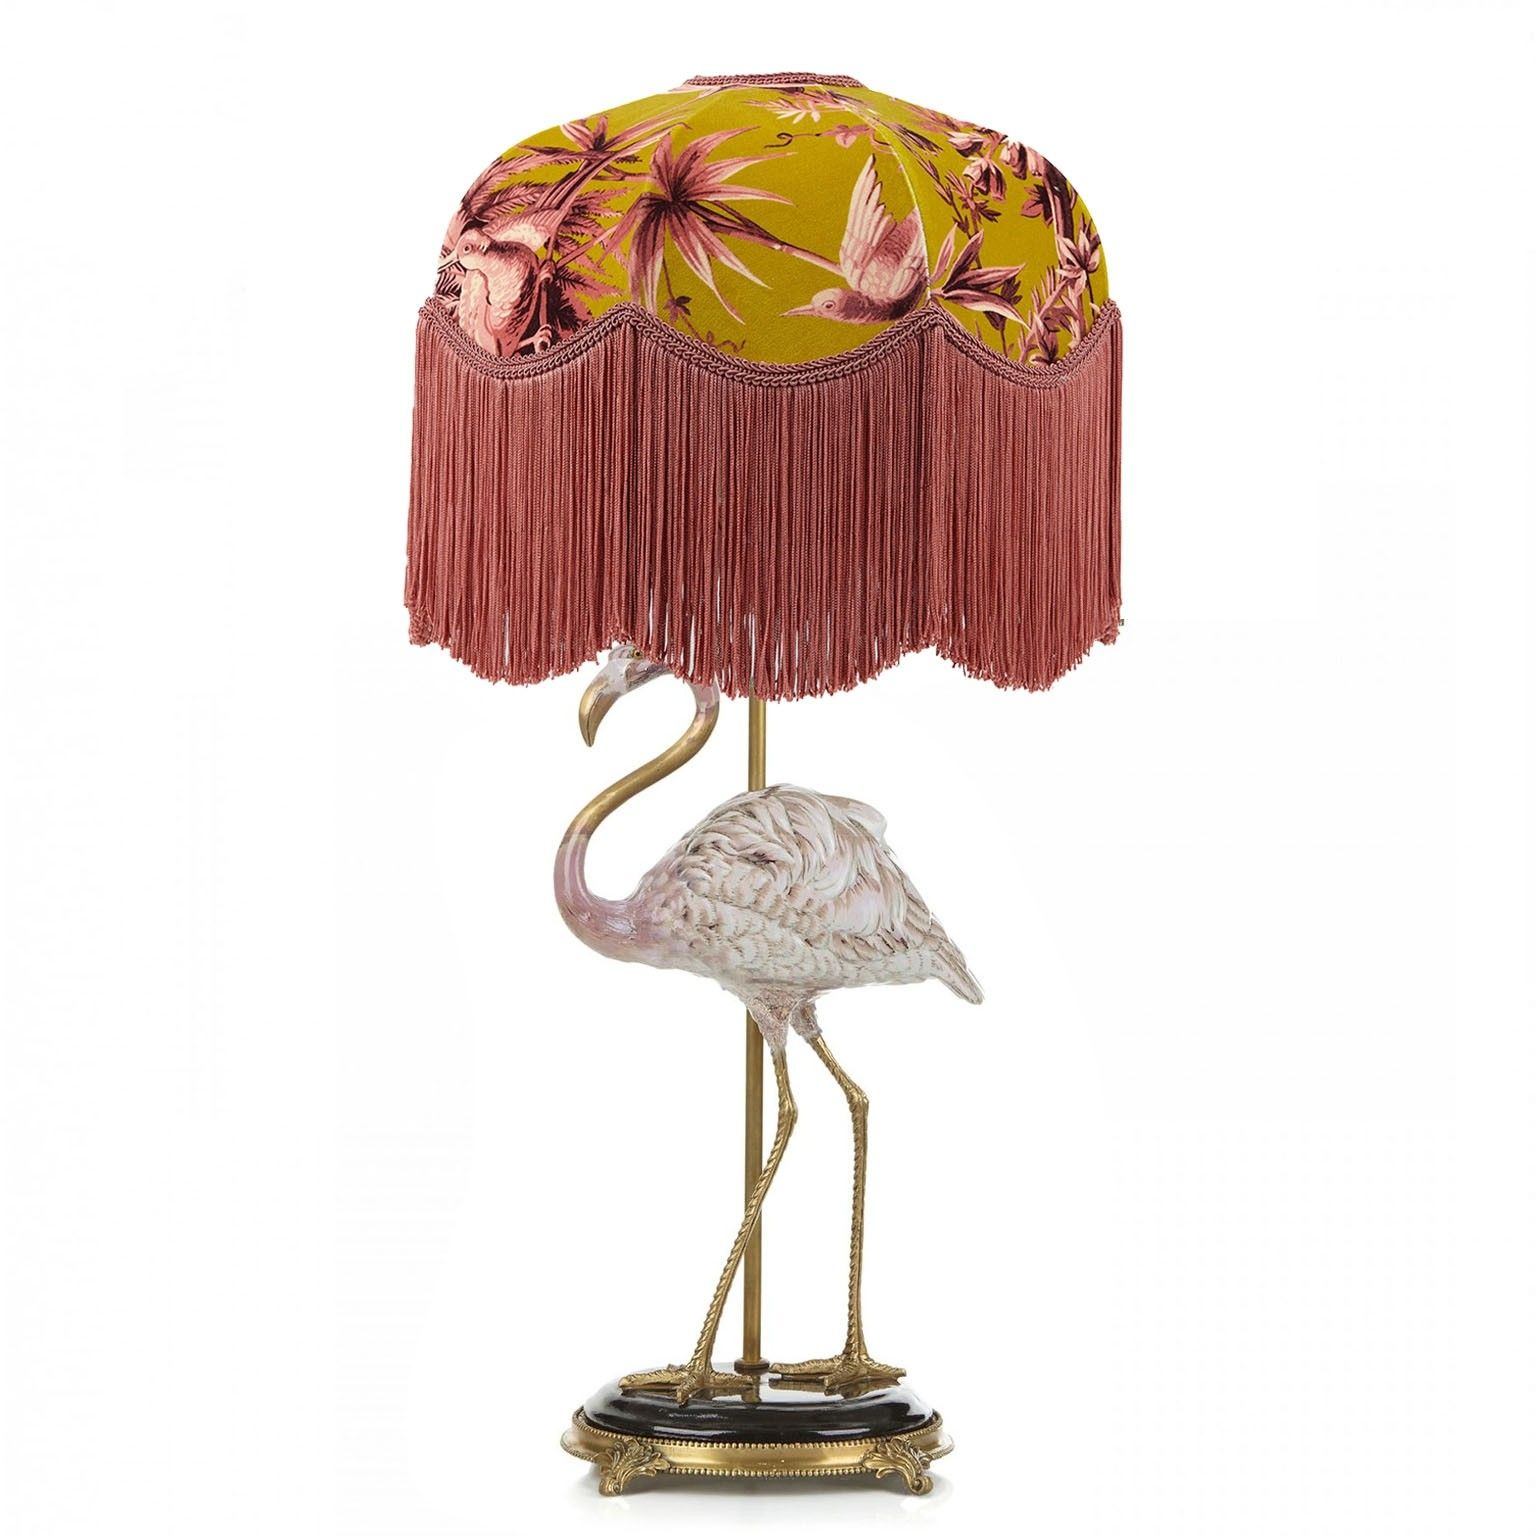 Aurora Tilia Chartreuse Lampshade With Flamingo Lampstand Home Accessories Boho Eclectic Decor Lamp Mason Jar Chandelier Diy